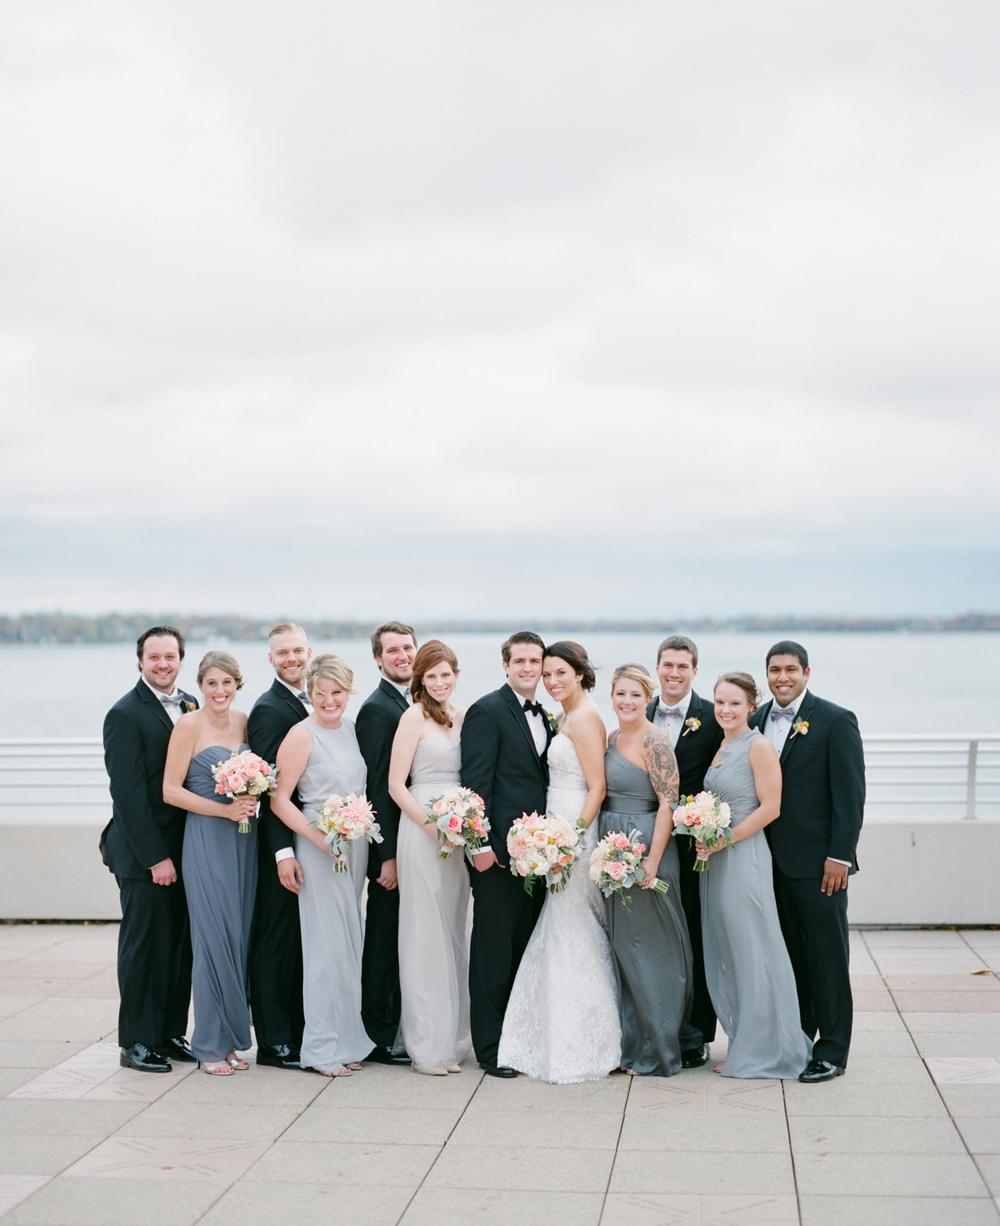 University_Club_Madison_Wedding_025.jpg